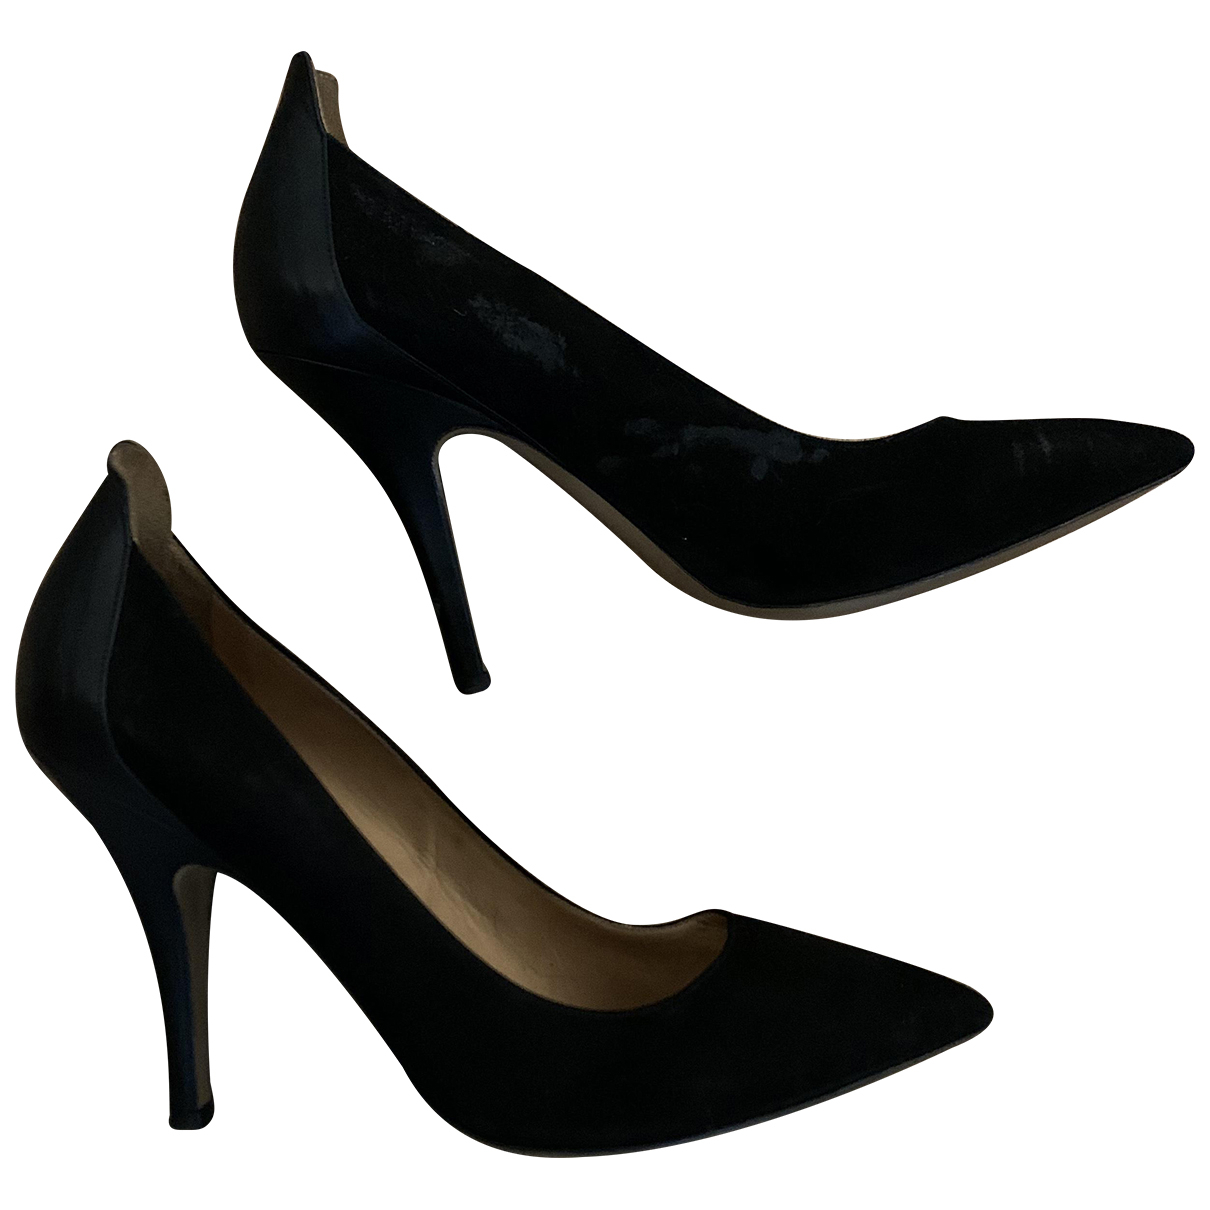 Isabel Marant N Black Suede Heels for Women 40 EU